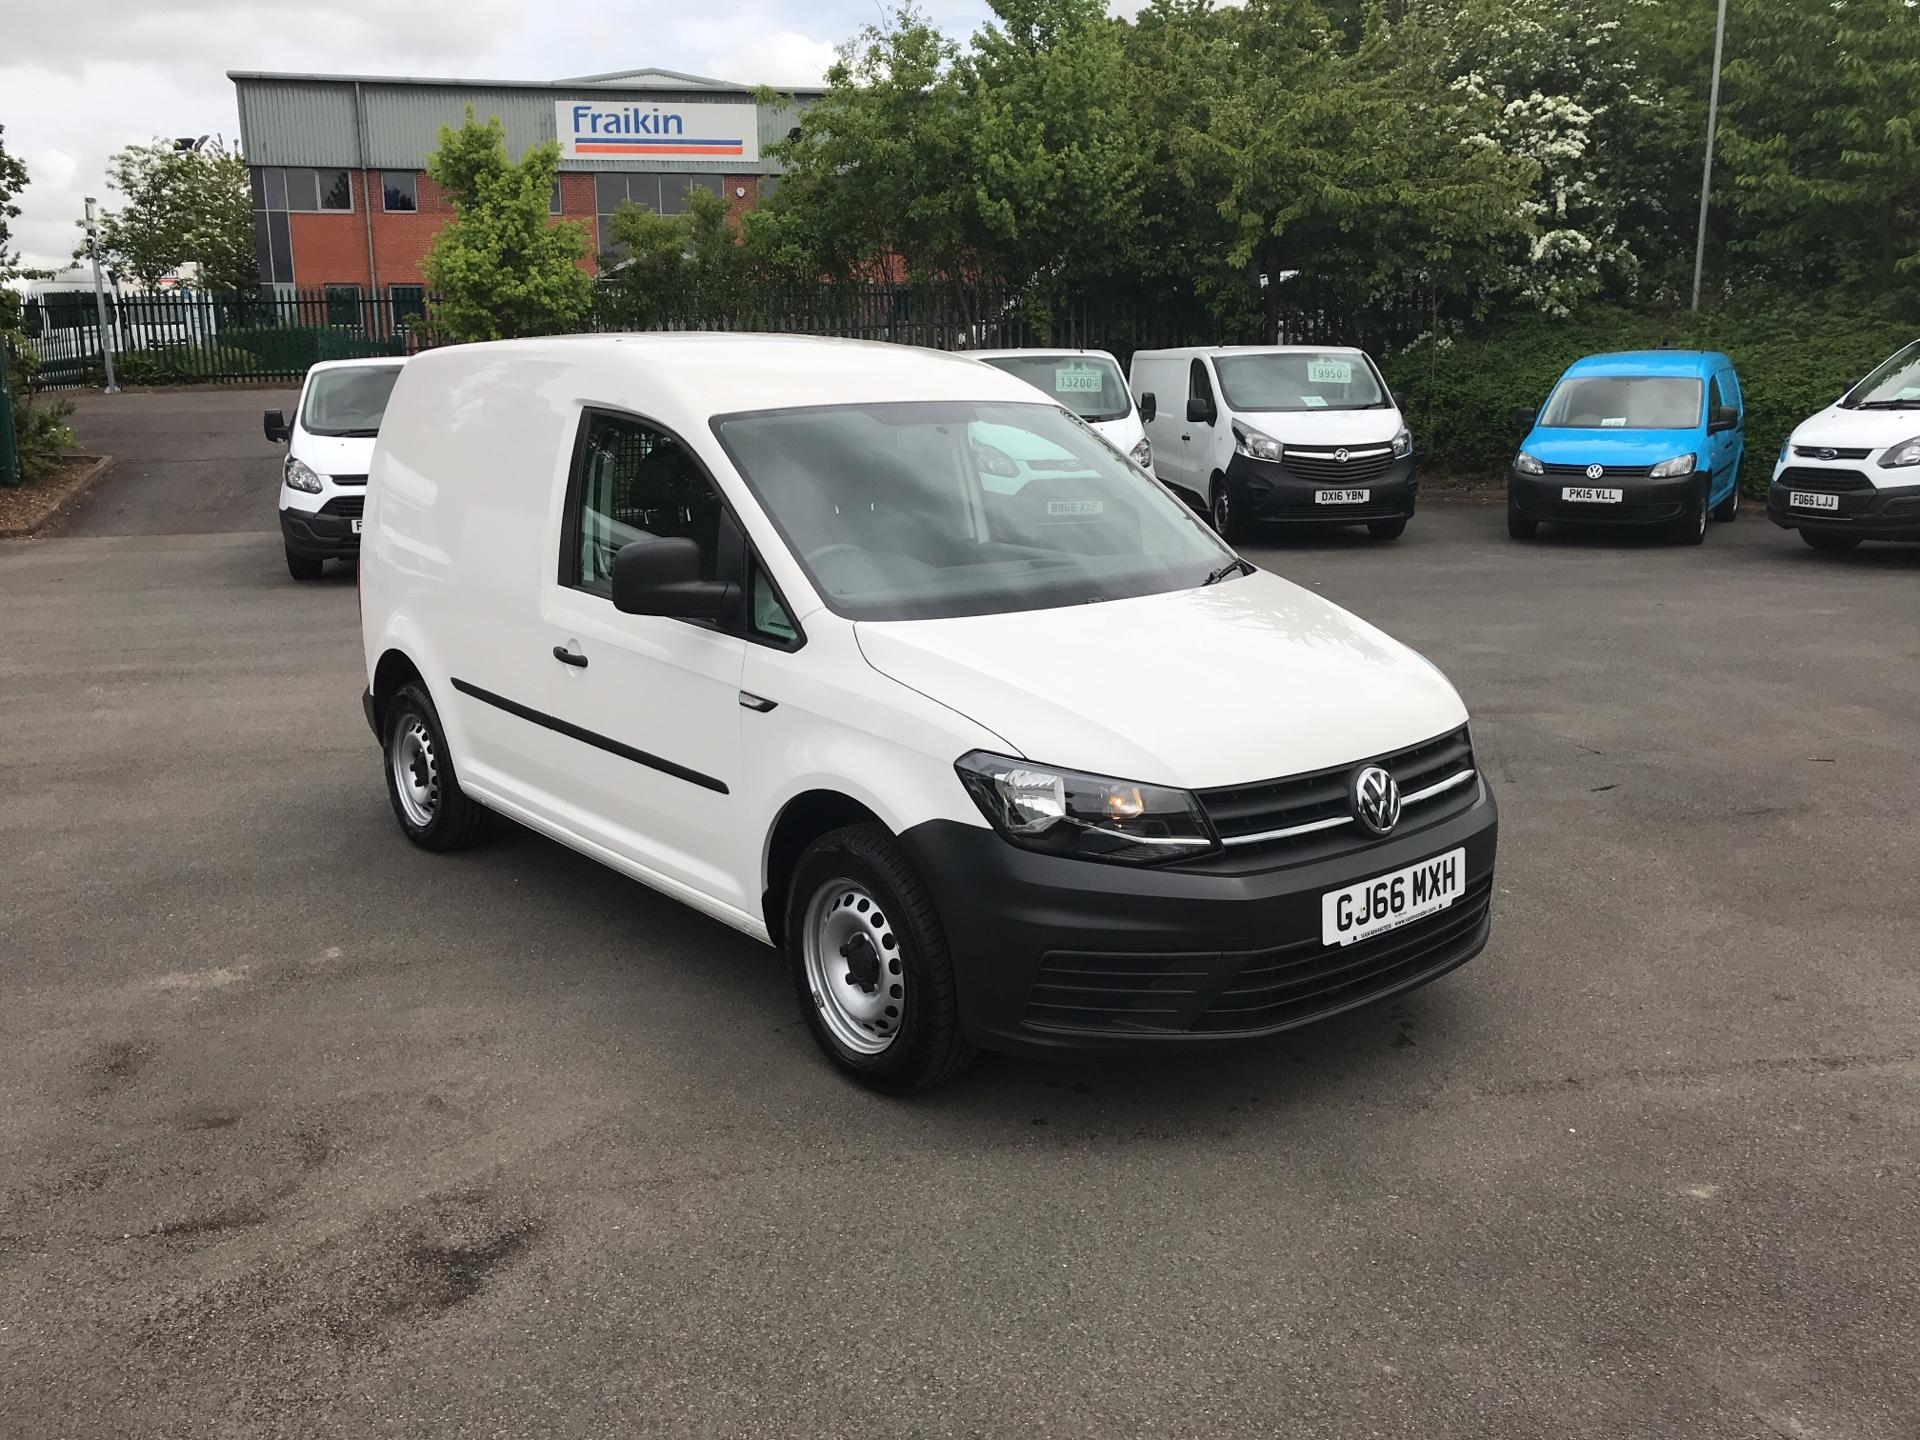 2016 Volkswagen Caddy 2.0 Tdi Bluemotion Tech 75Ps Startline Van (GJ66MXH) Thumbnail 1